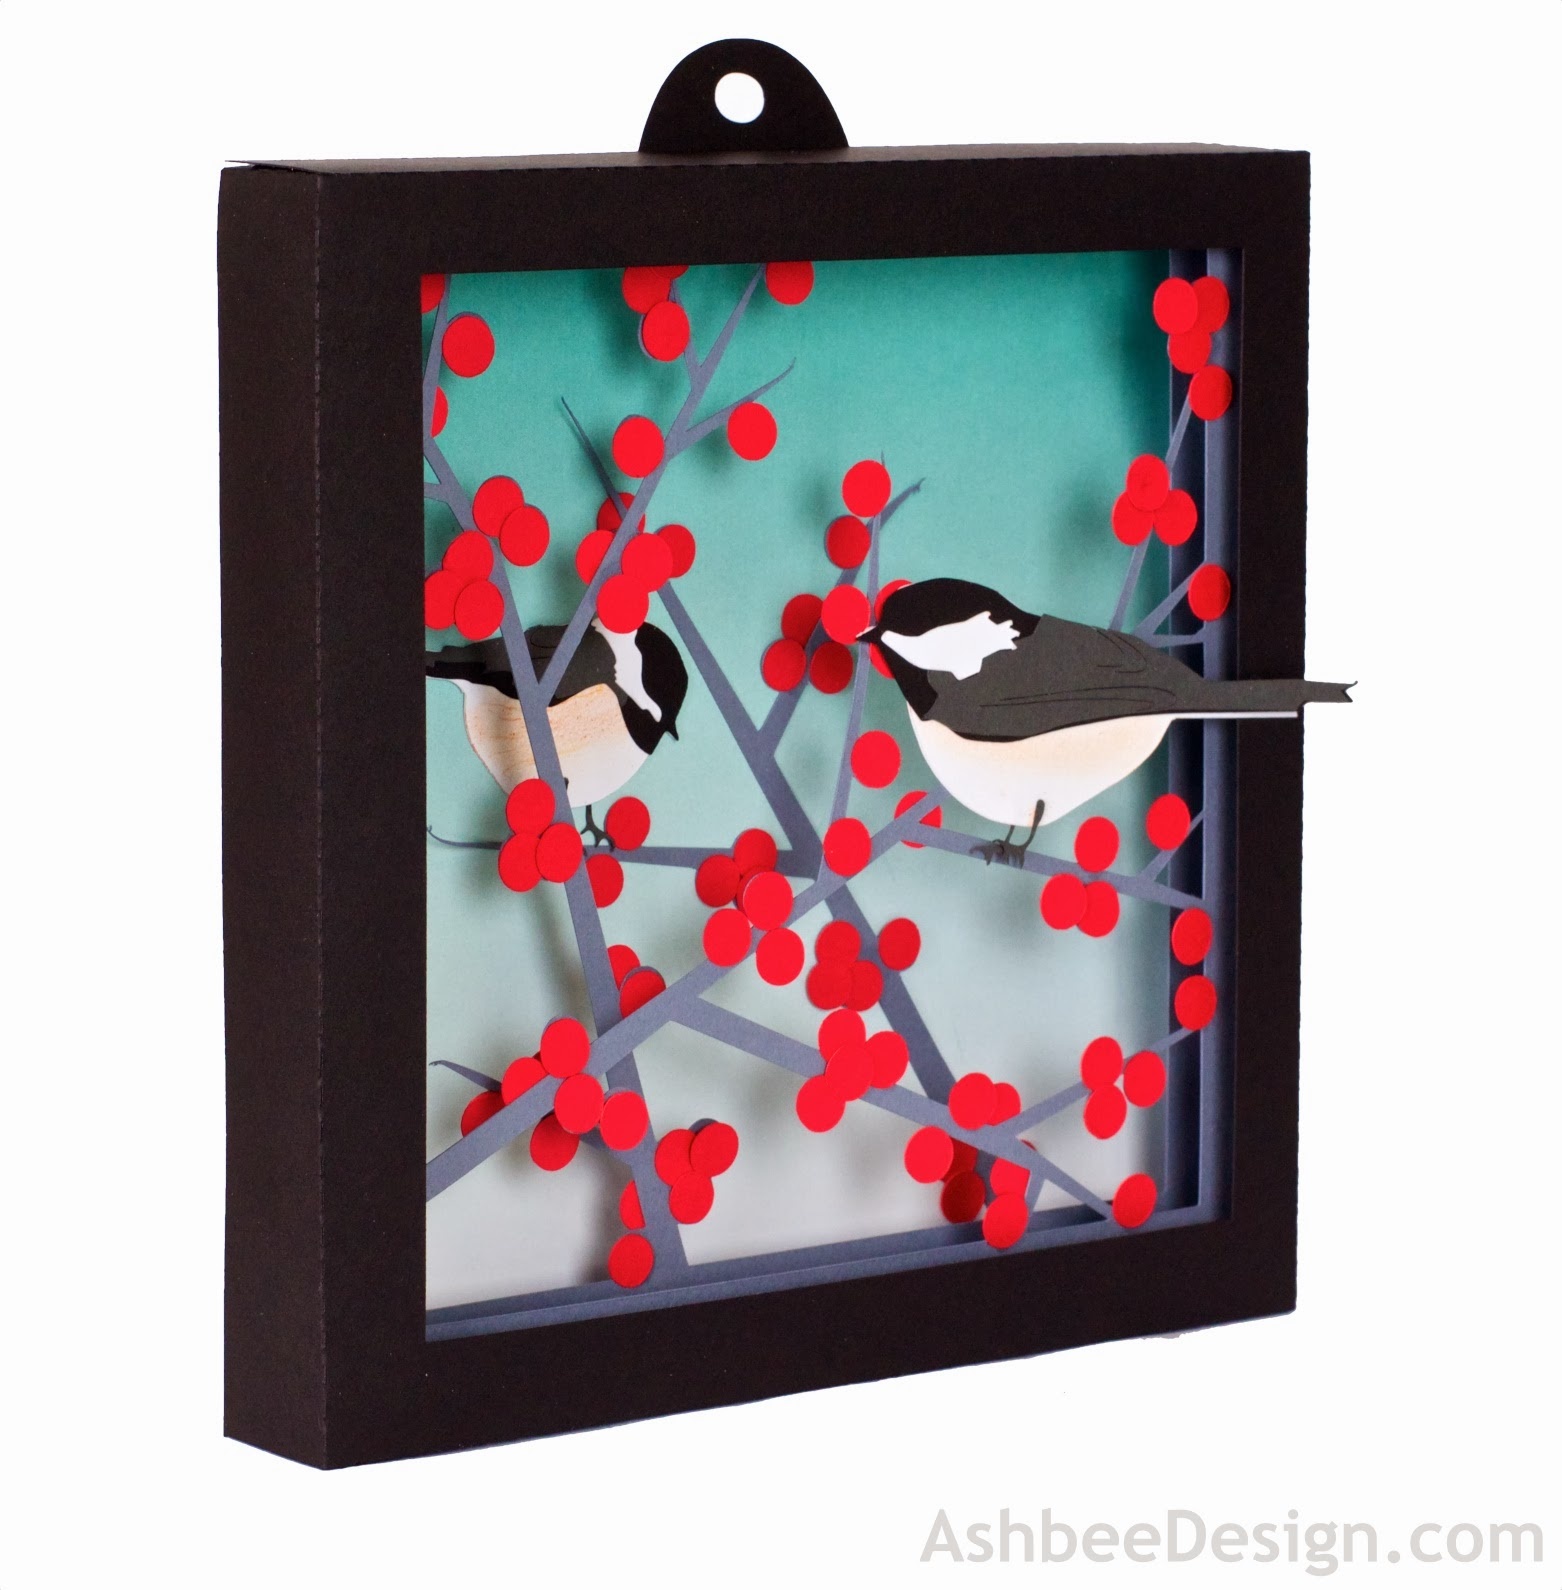 Project Description This Shadow Box Is Composed Of  Cut Files Assembled In Layers To Create A Winter Shadow Box Including Two Chickadees Perched In A